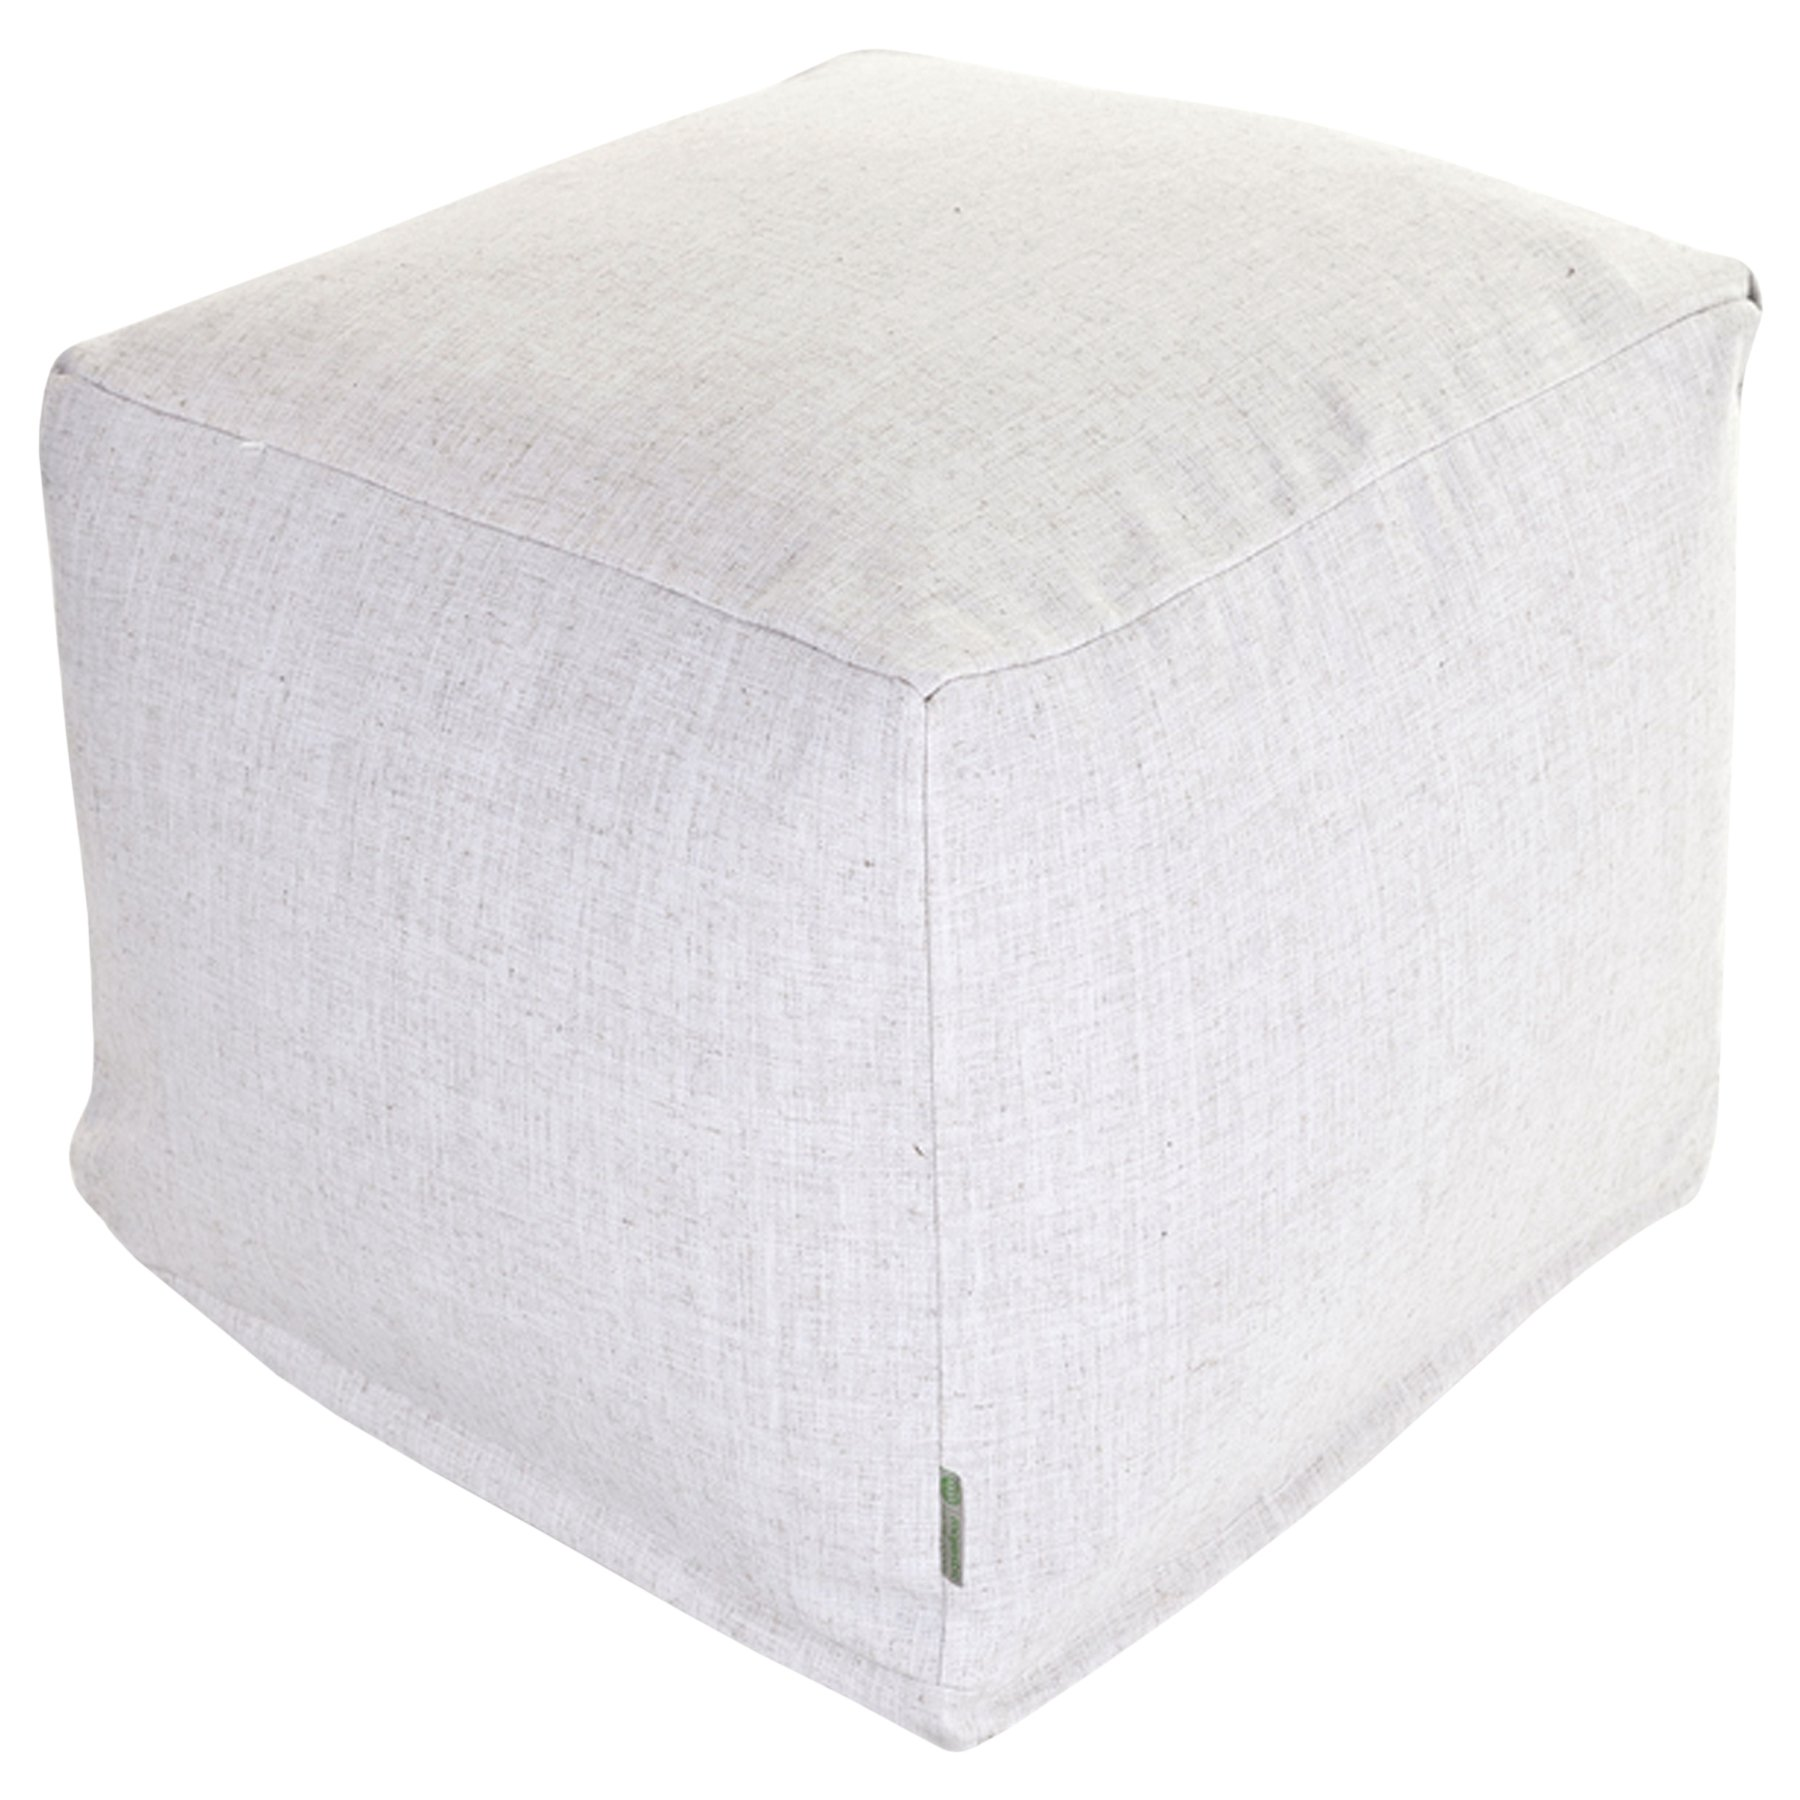 Majestic Home Goods Magnolia Wales Indoor Bean Bag Ottoman Pouf Cube 17'' L x 17'' W x 17'' H